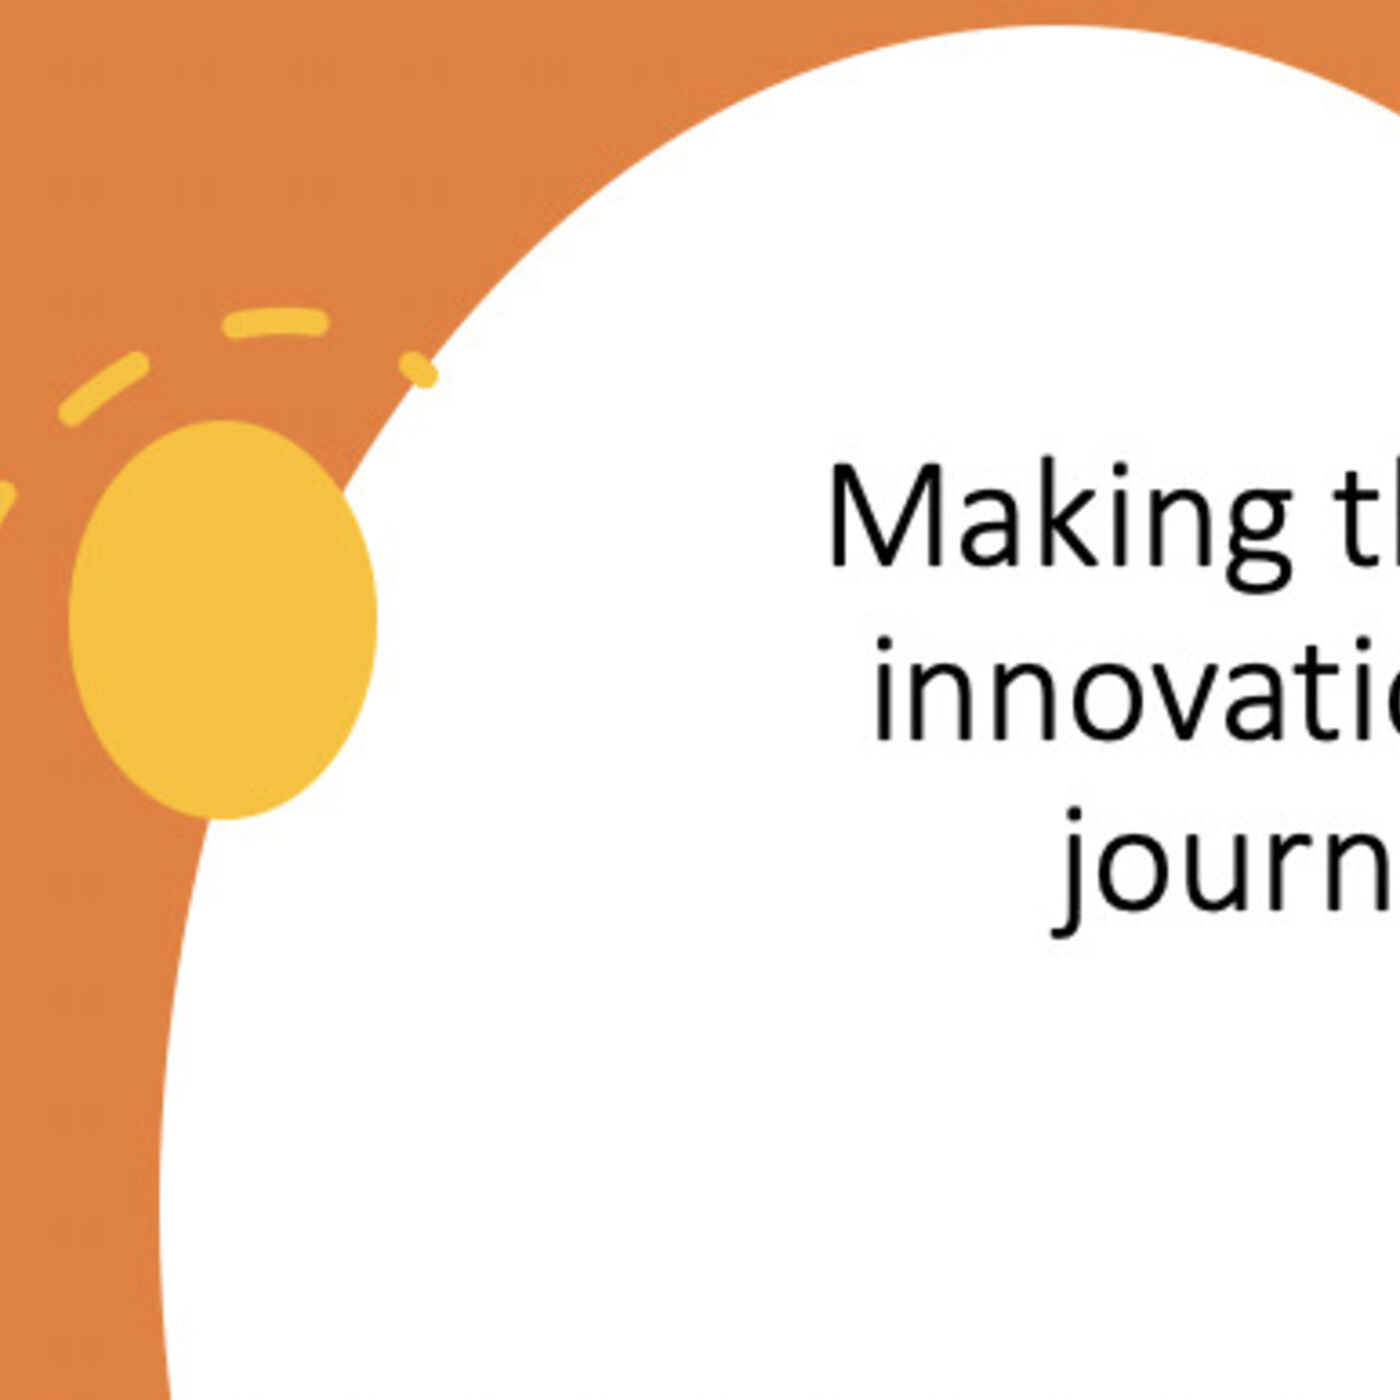 Making the innovation journey